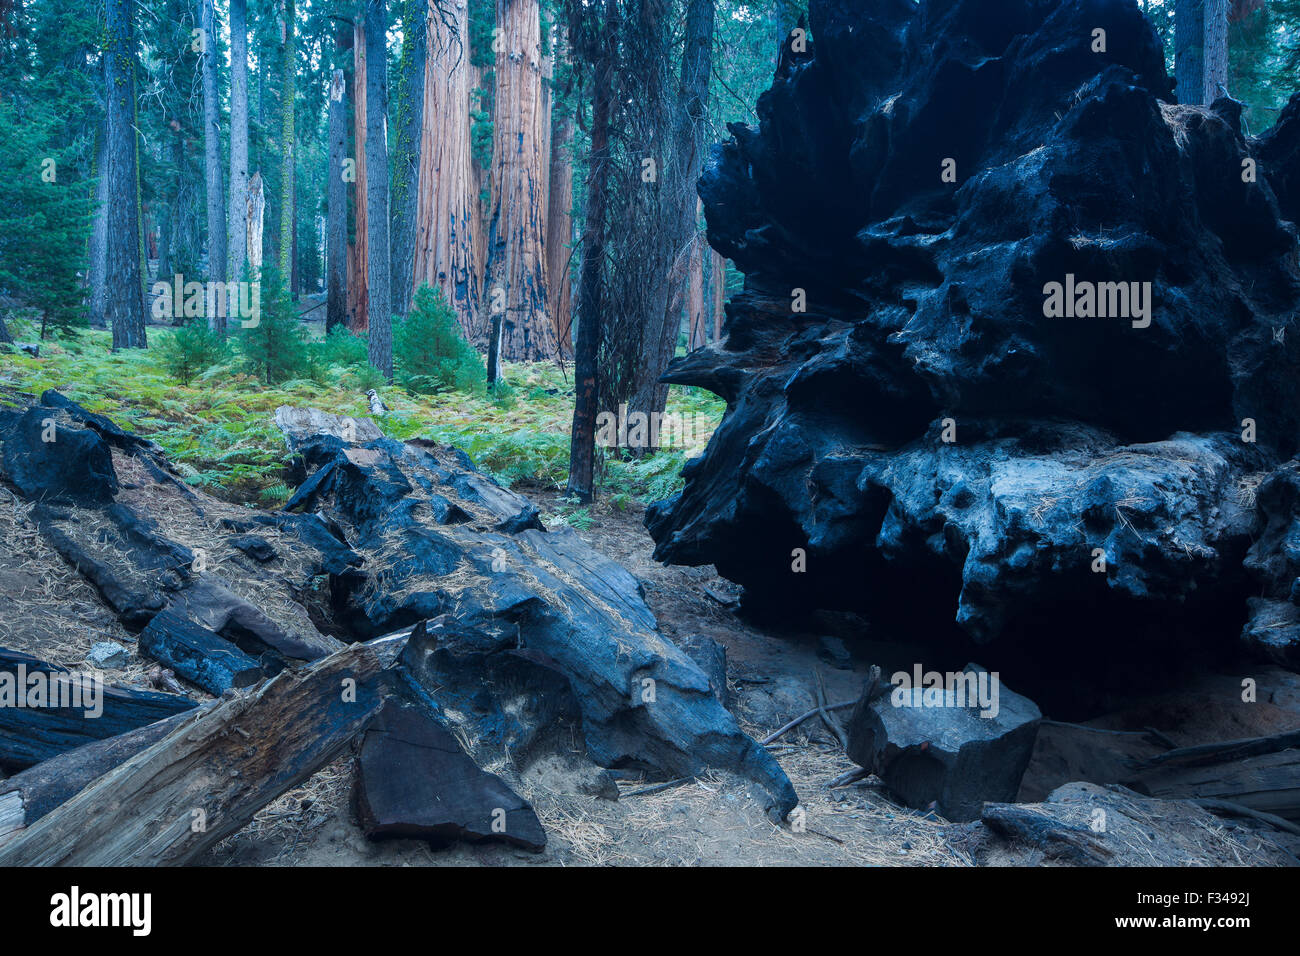 Un arbre séquoia géant tombé, Sequoia National Park, California, USA Photo Stock